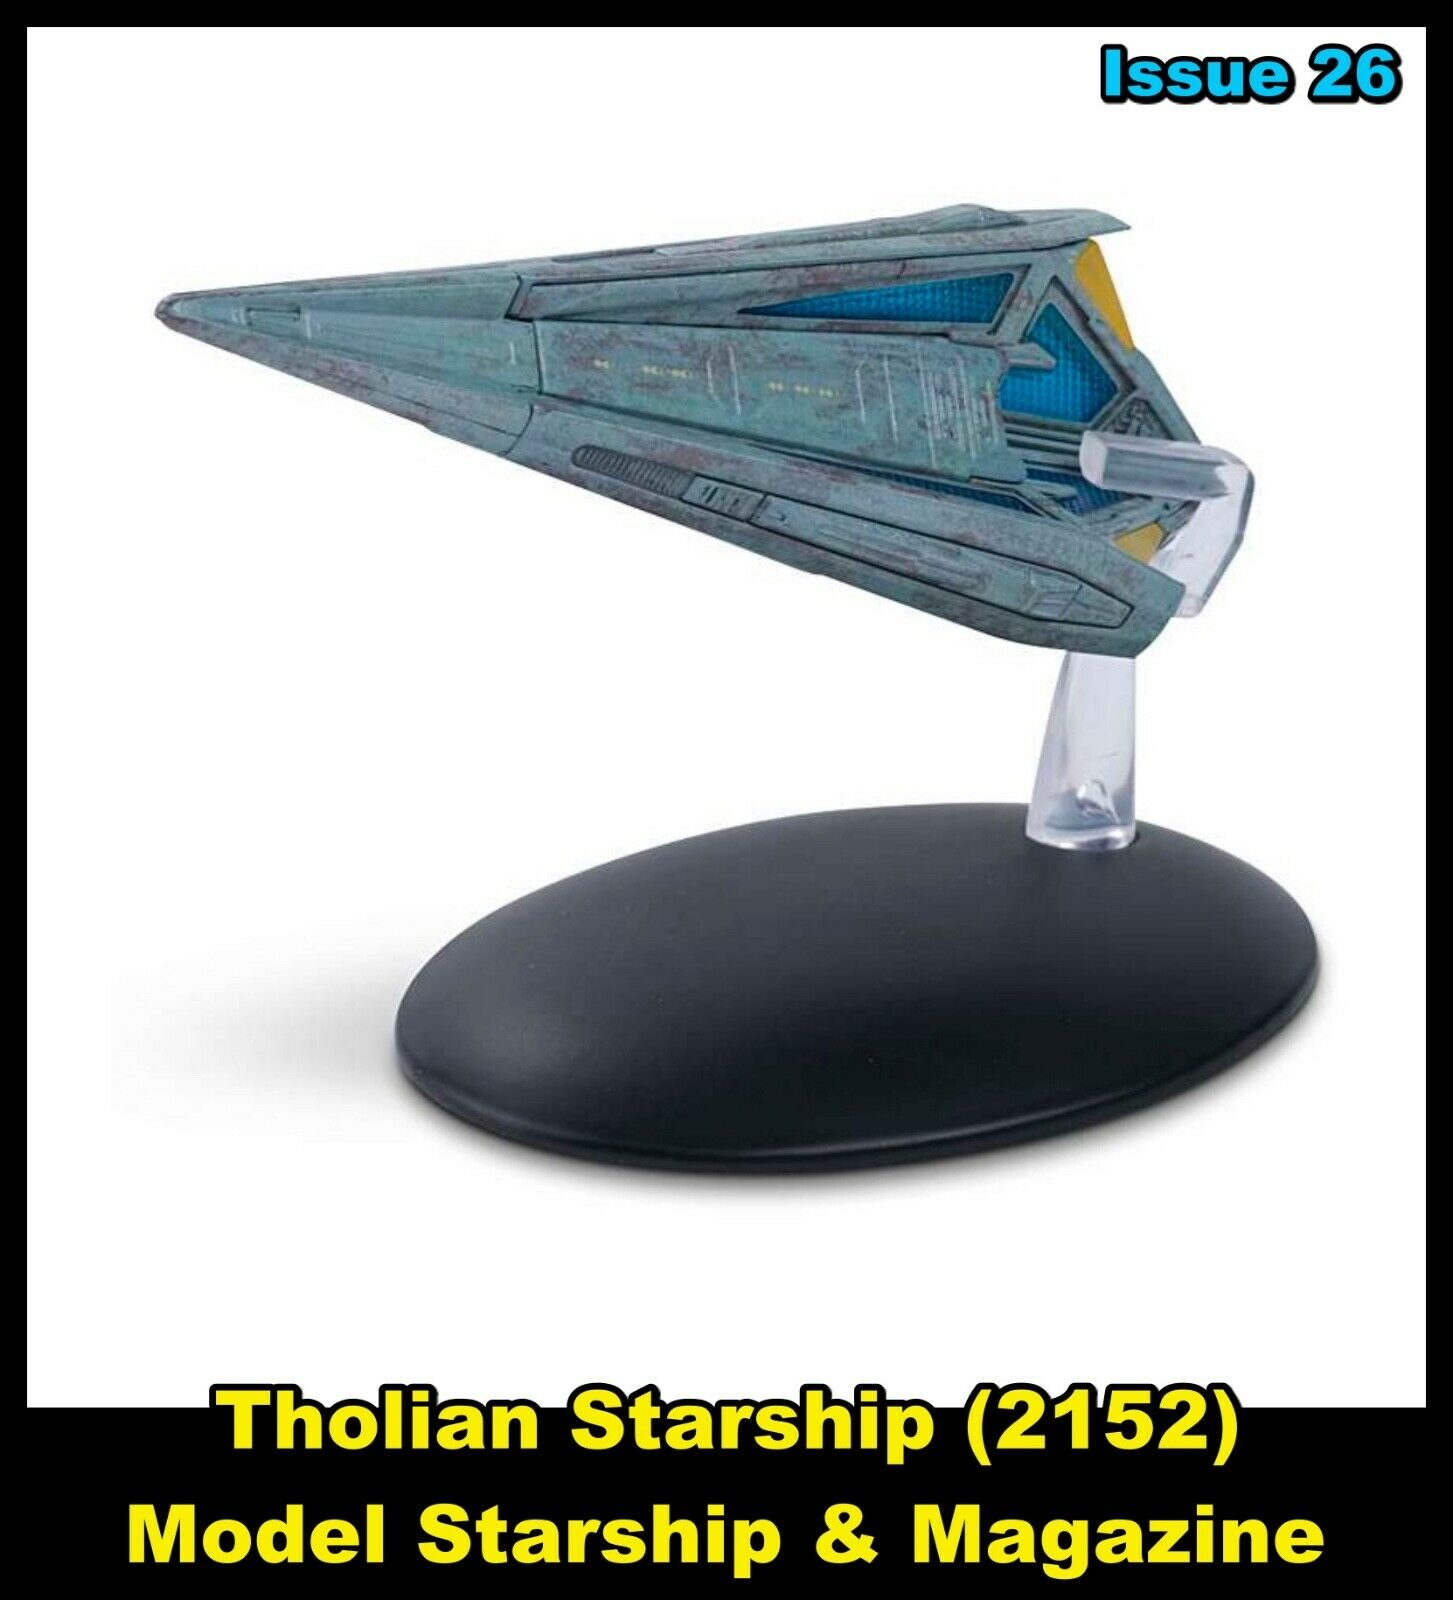 Issue 26: Tholian Starship (2152) Model